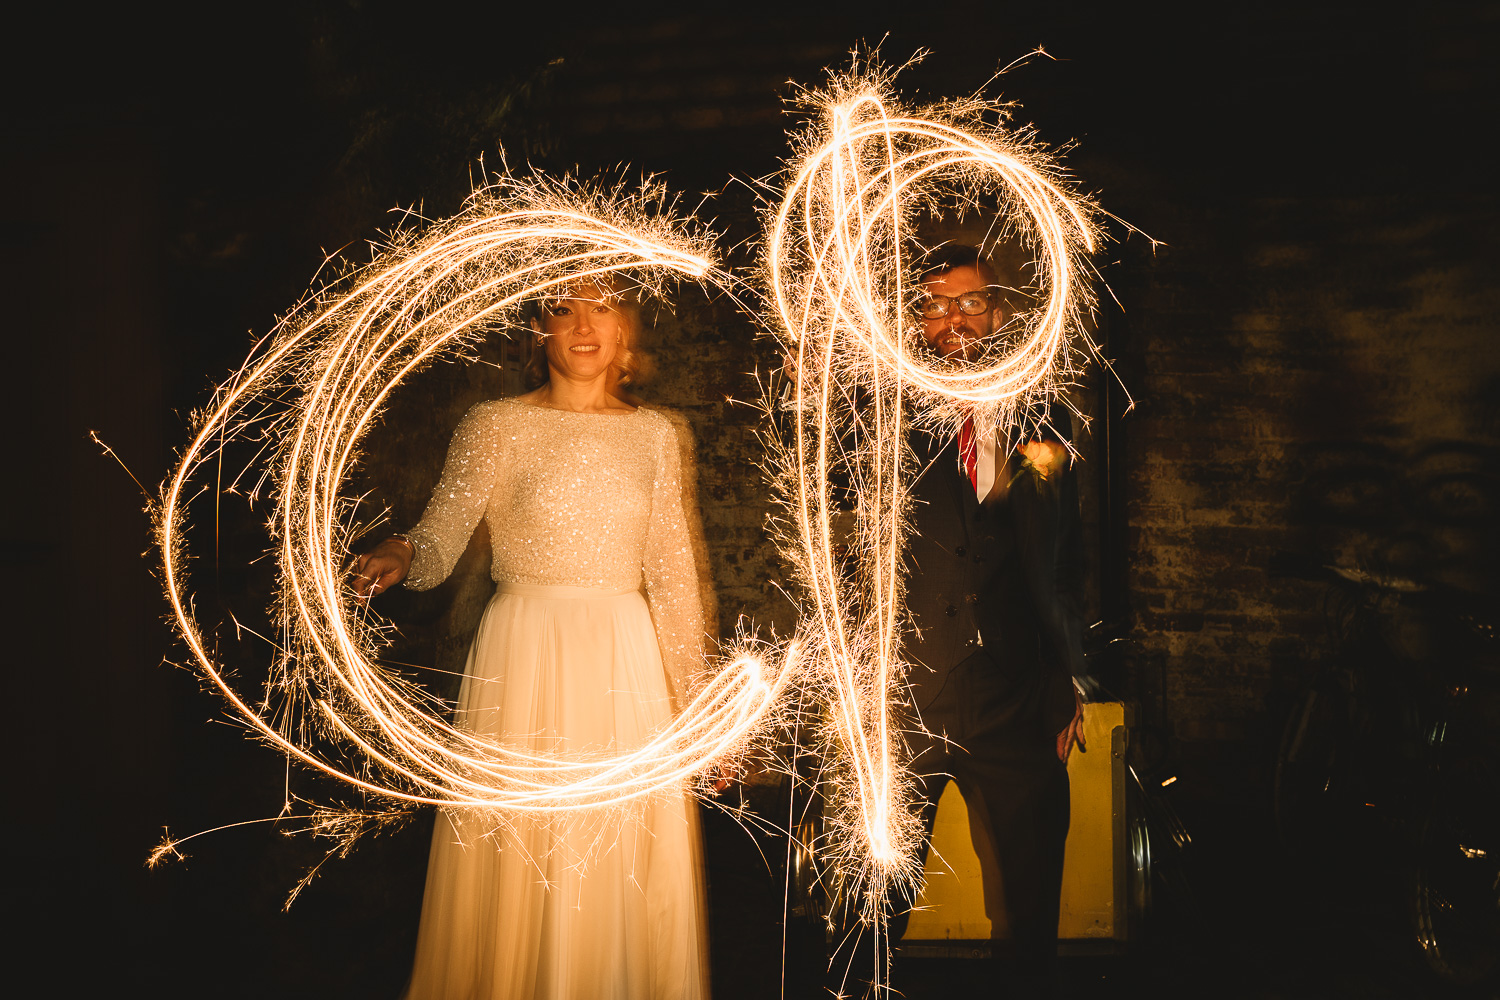 Long exposure couple alternative wedding portrait with sparklers